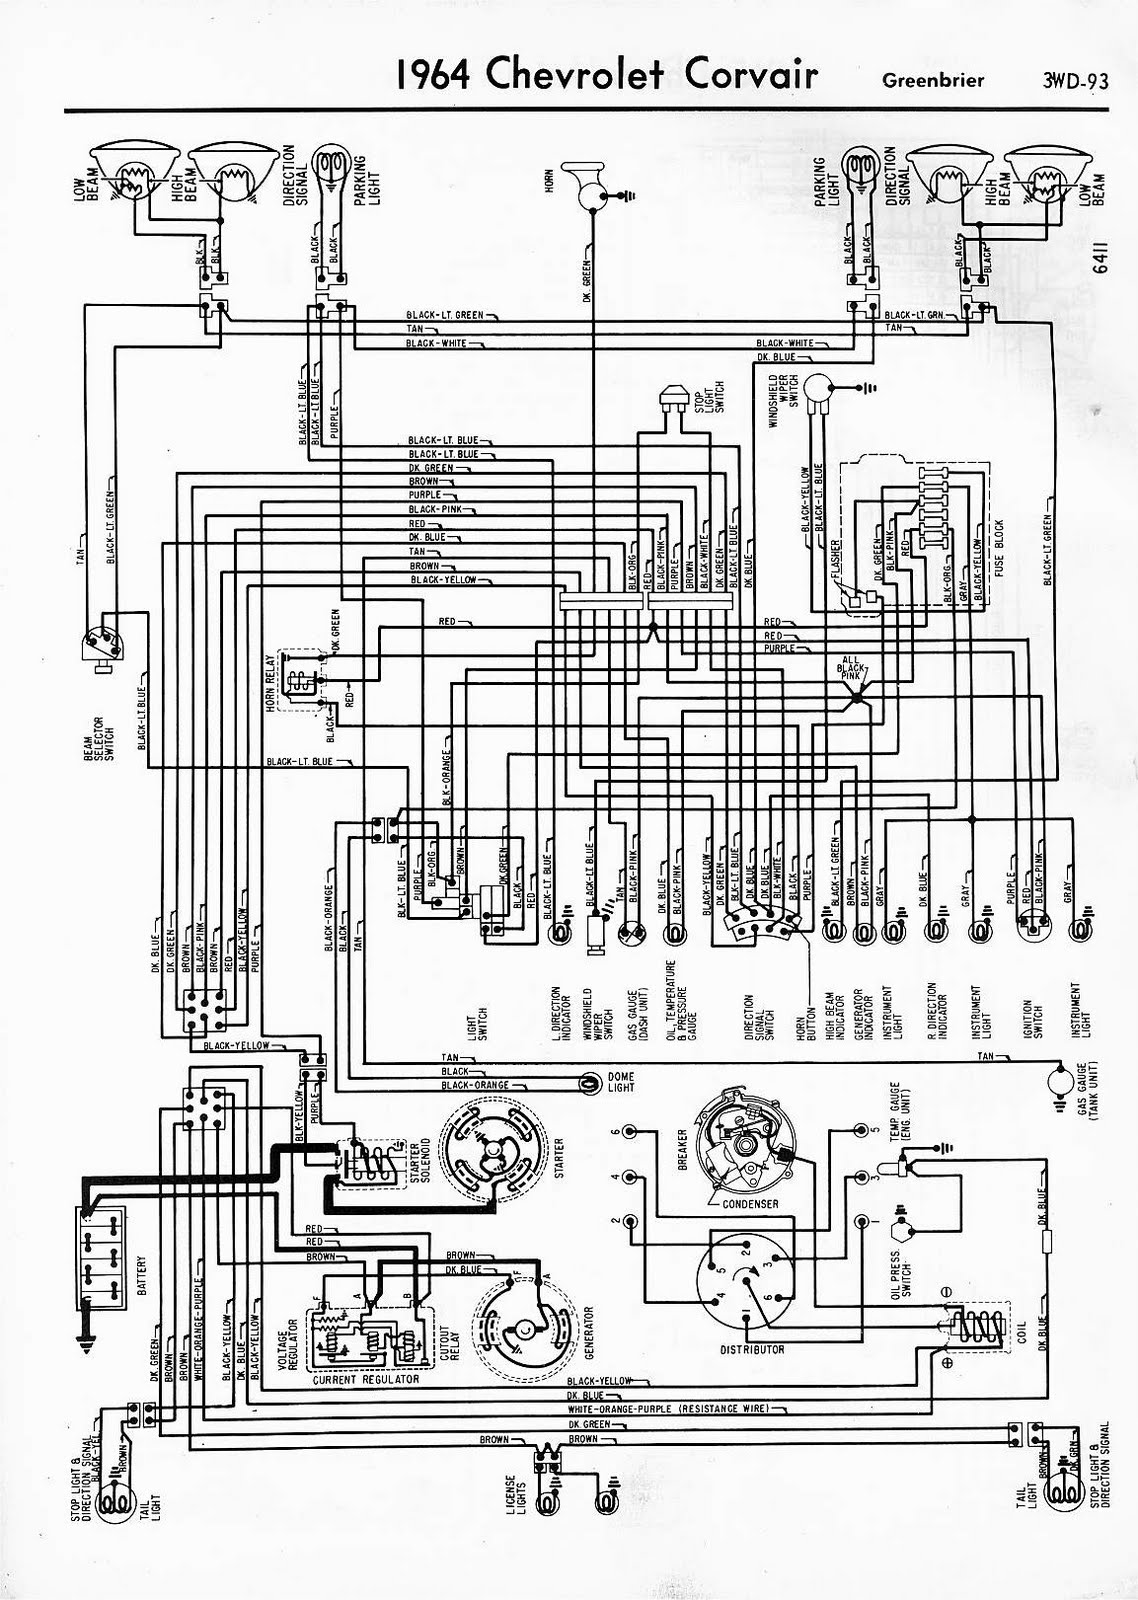 Free Auto Wiring Diagram: 1964 Chevrolet Corvair